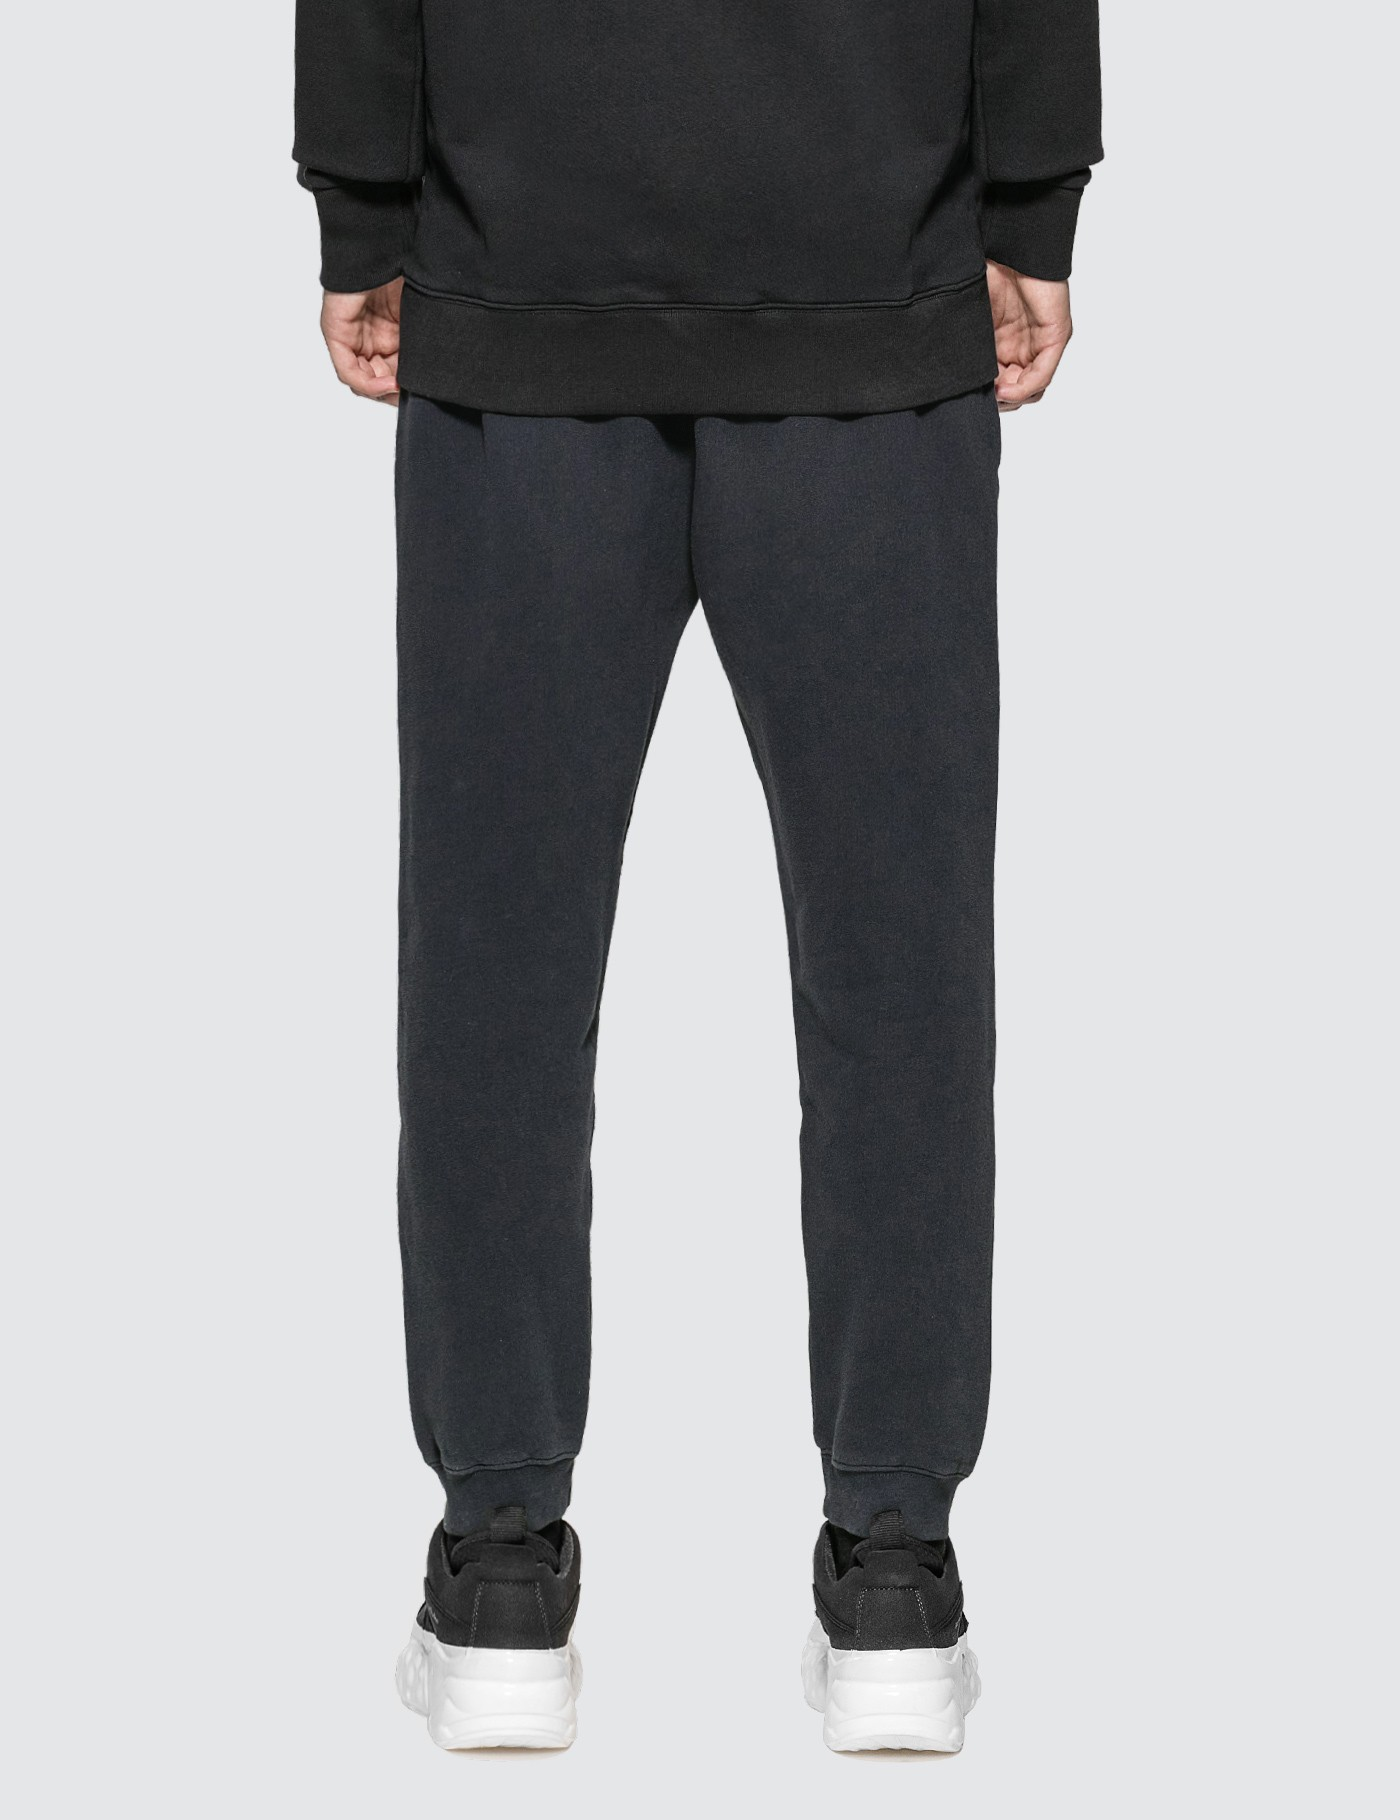 MAISON KITSUNE Triangle Fox Patch Sweatpants